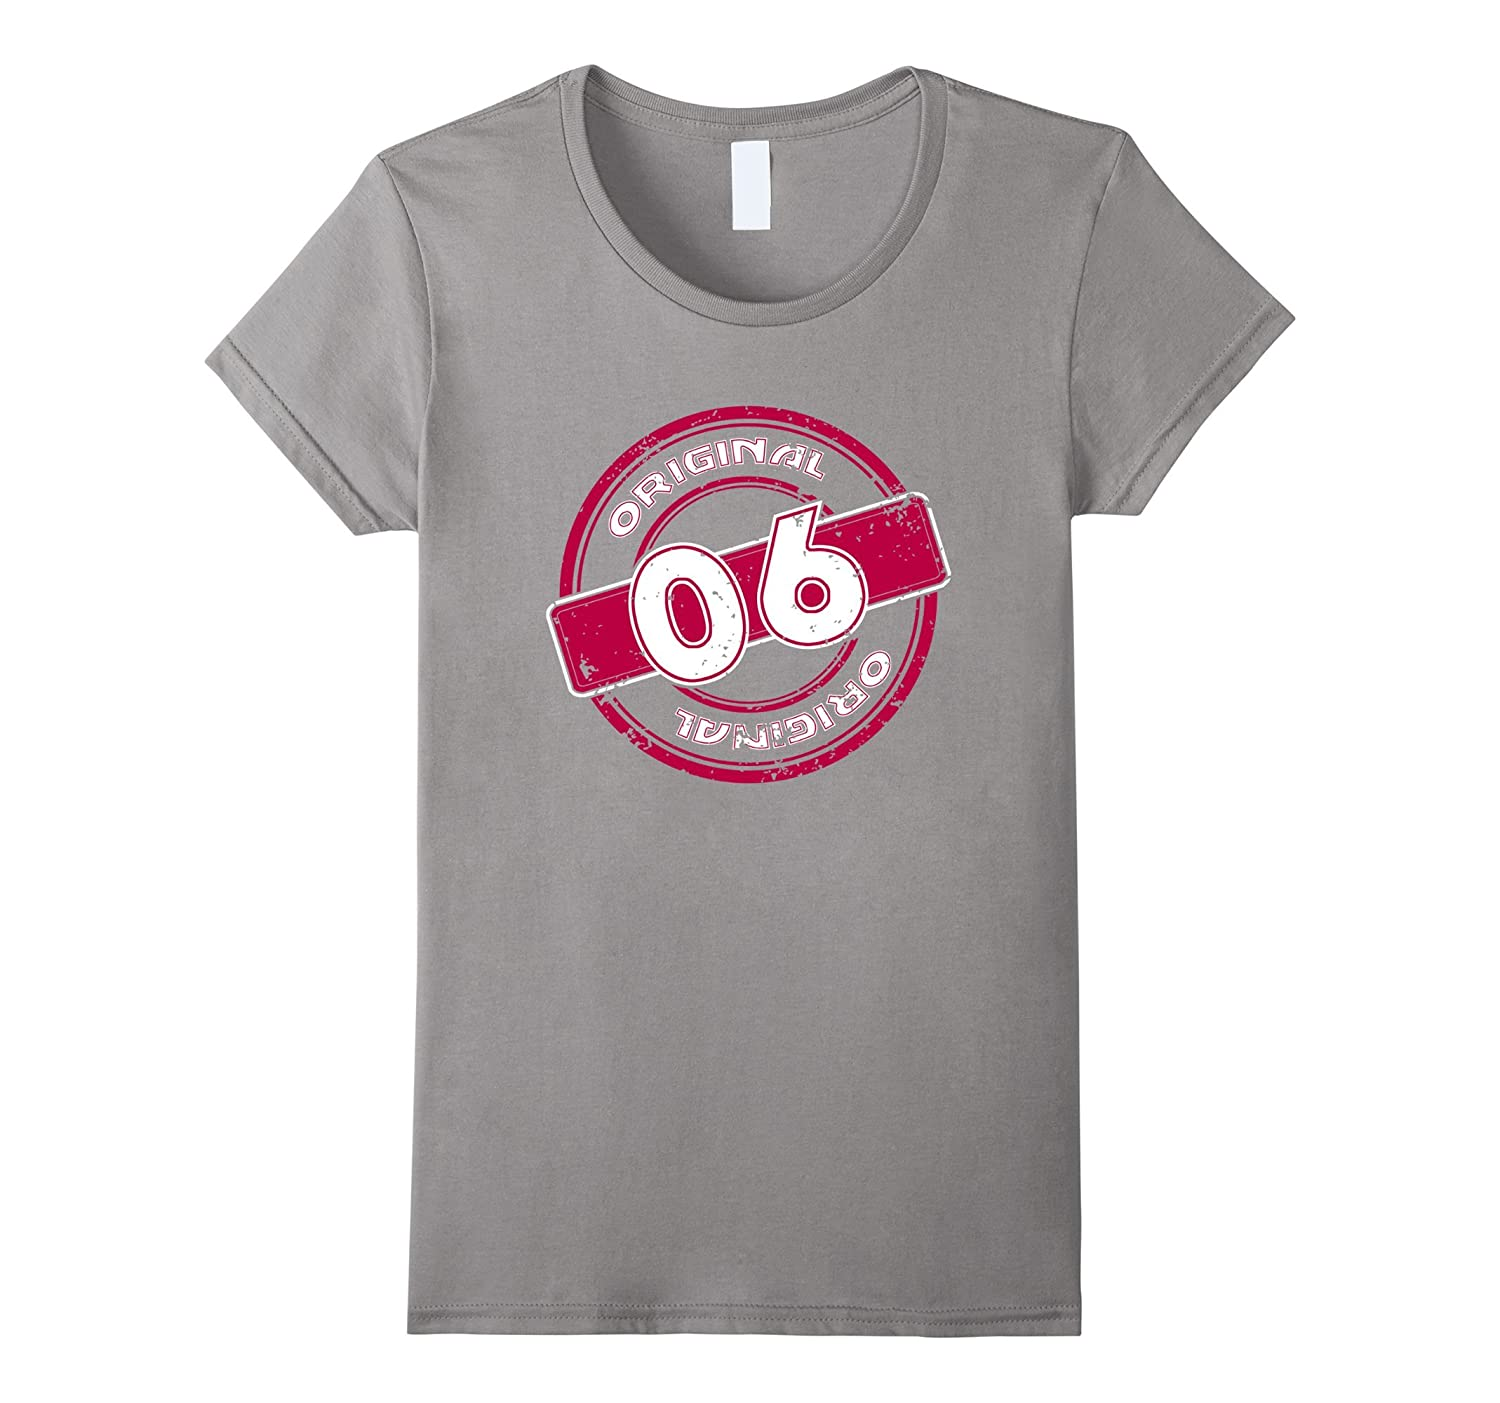 2006 T shirt 11th Birthday Gift Age 11 Year Old Girl T shirt